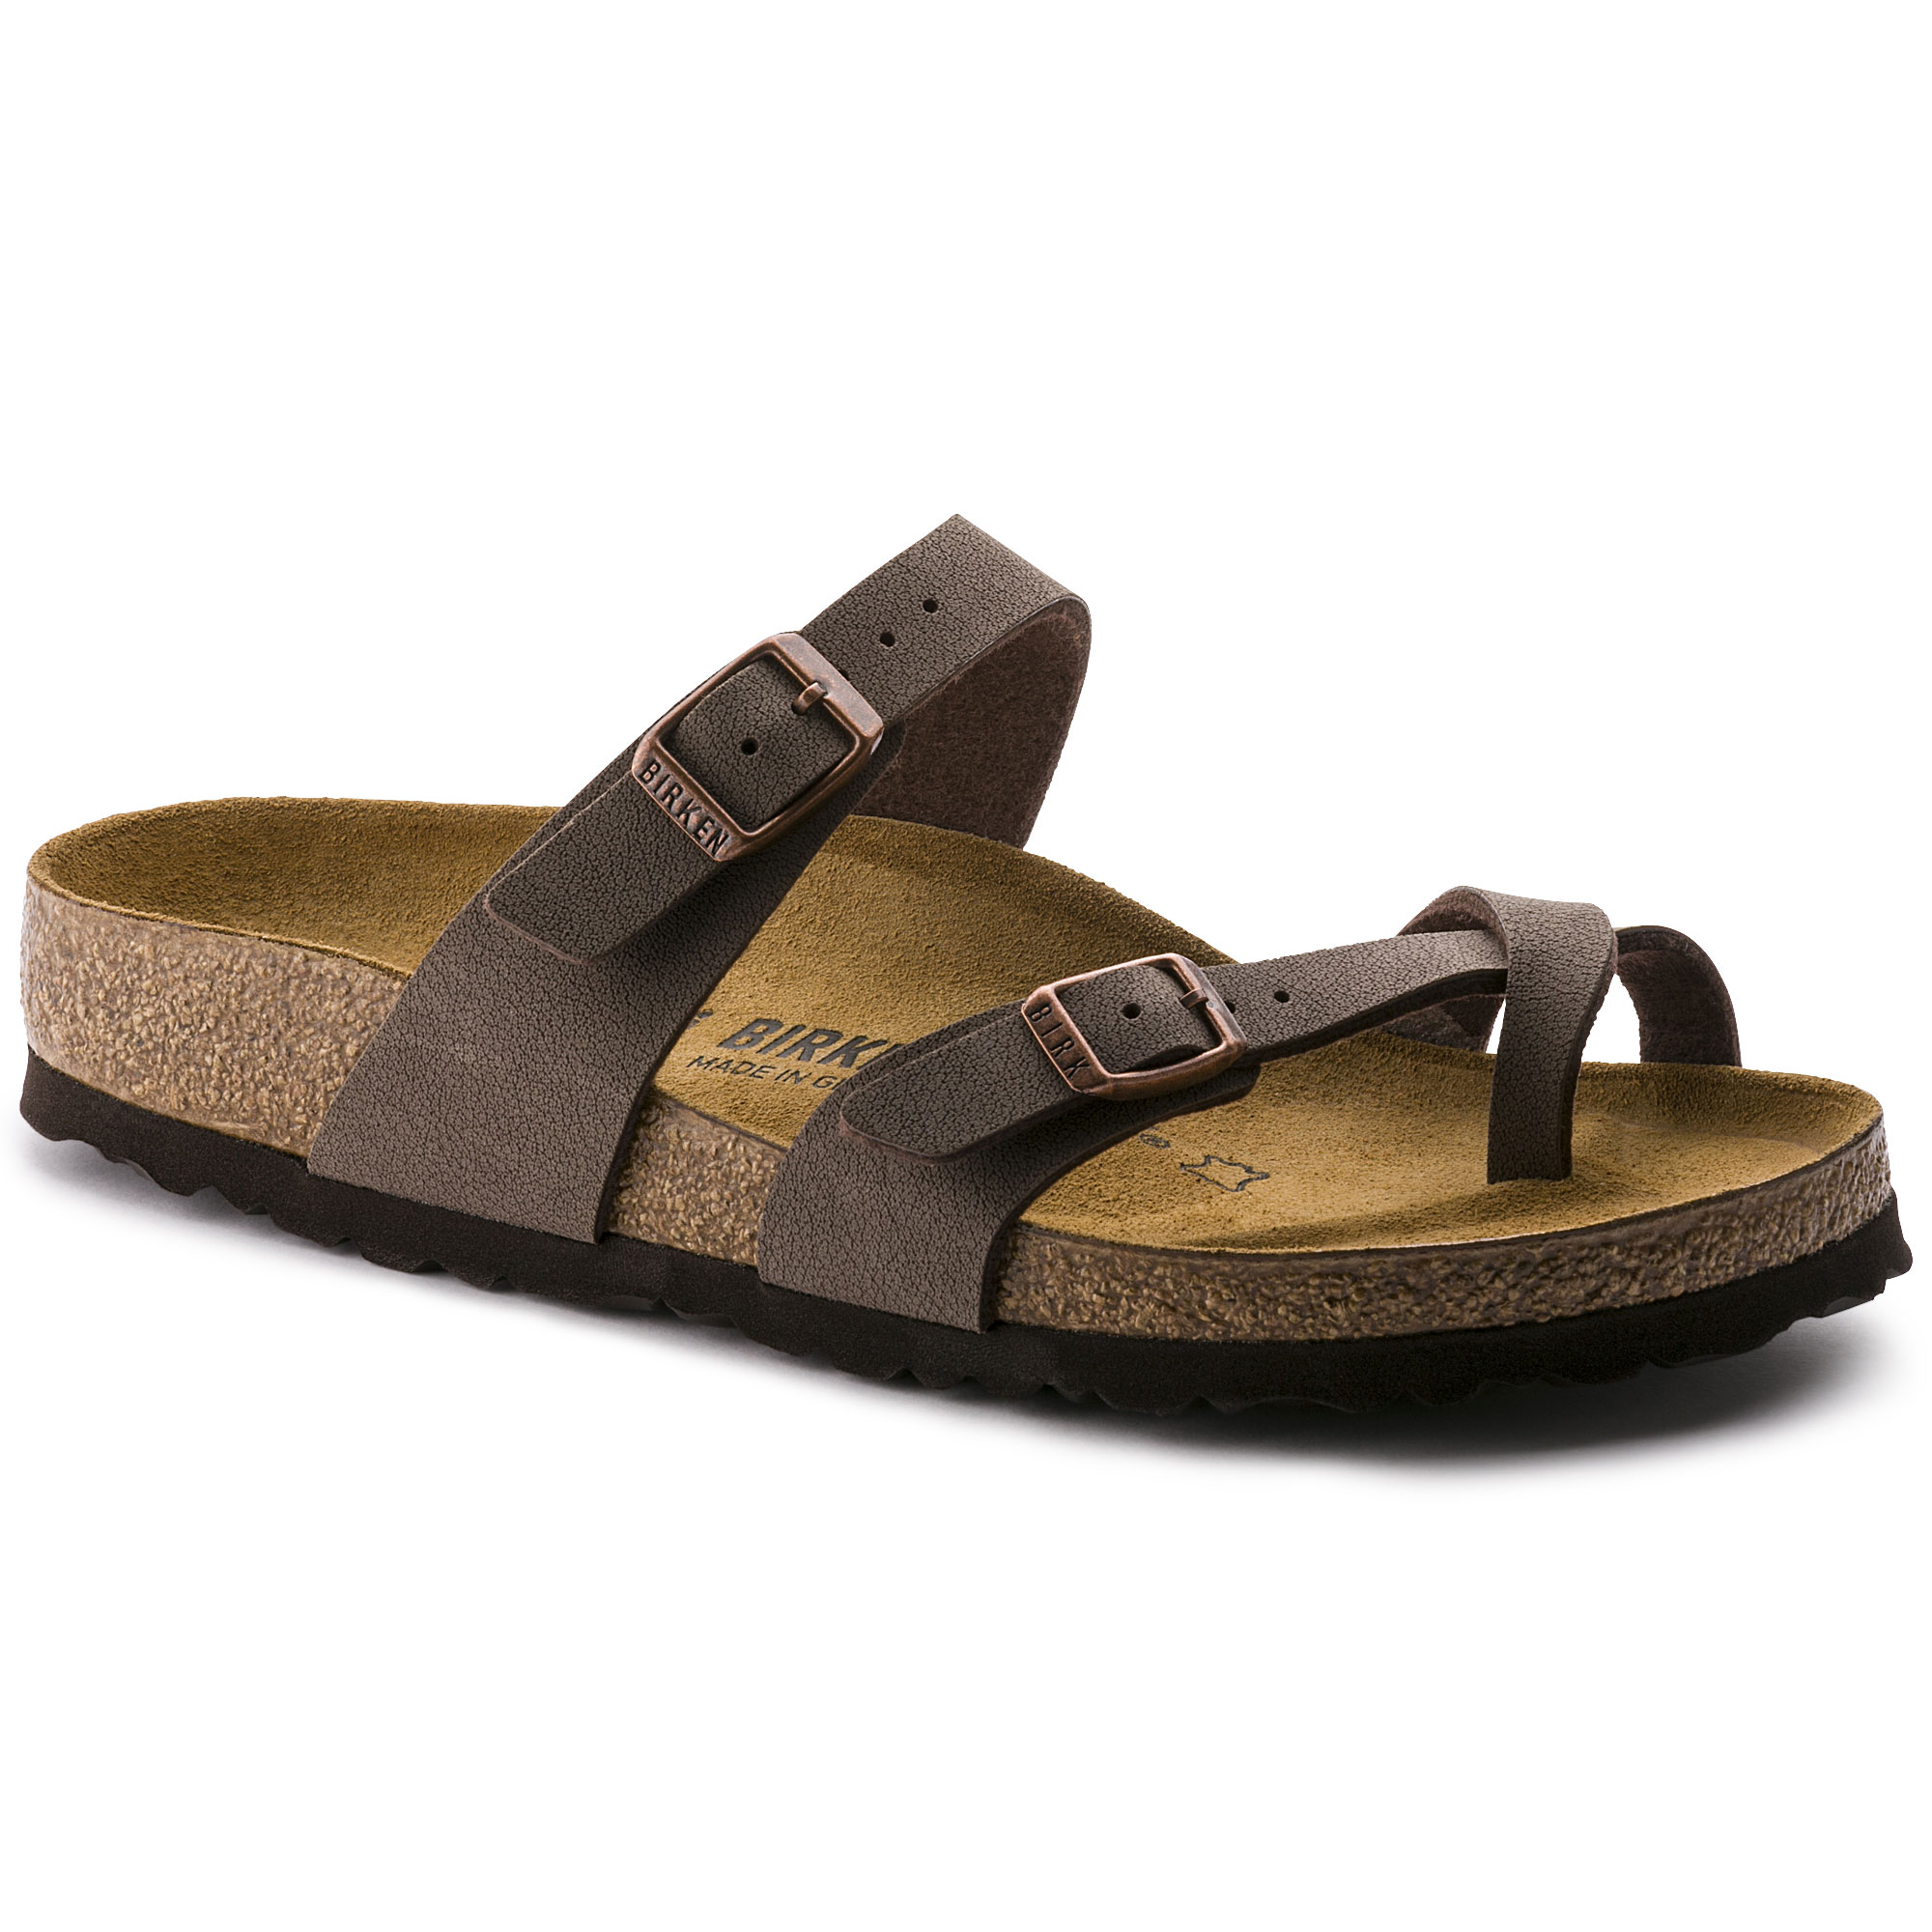 WOMEN'S NEW BIRKENSTOCK Mayari Mocha Birkibuc toe loop slide